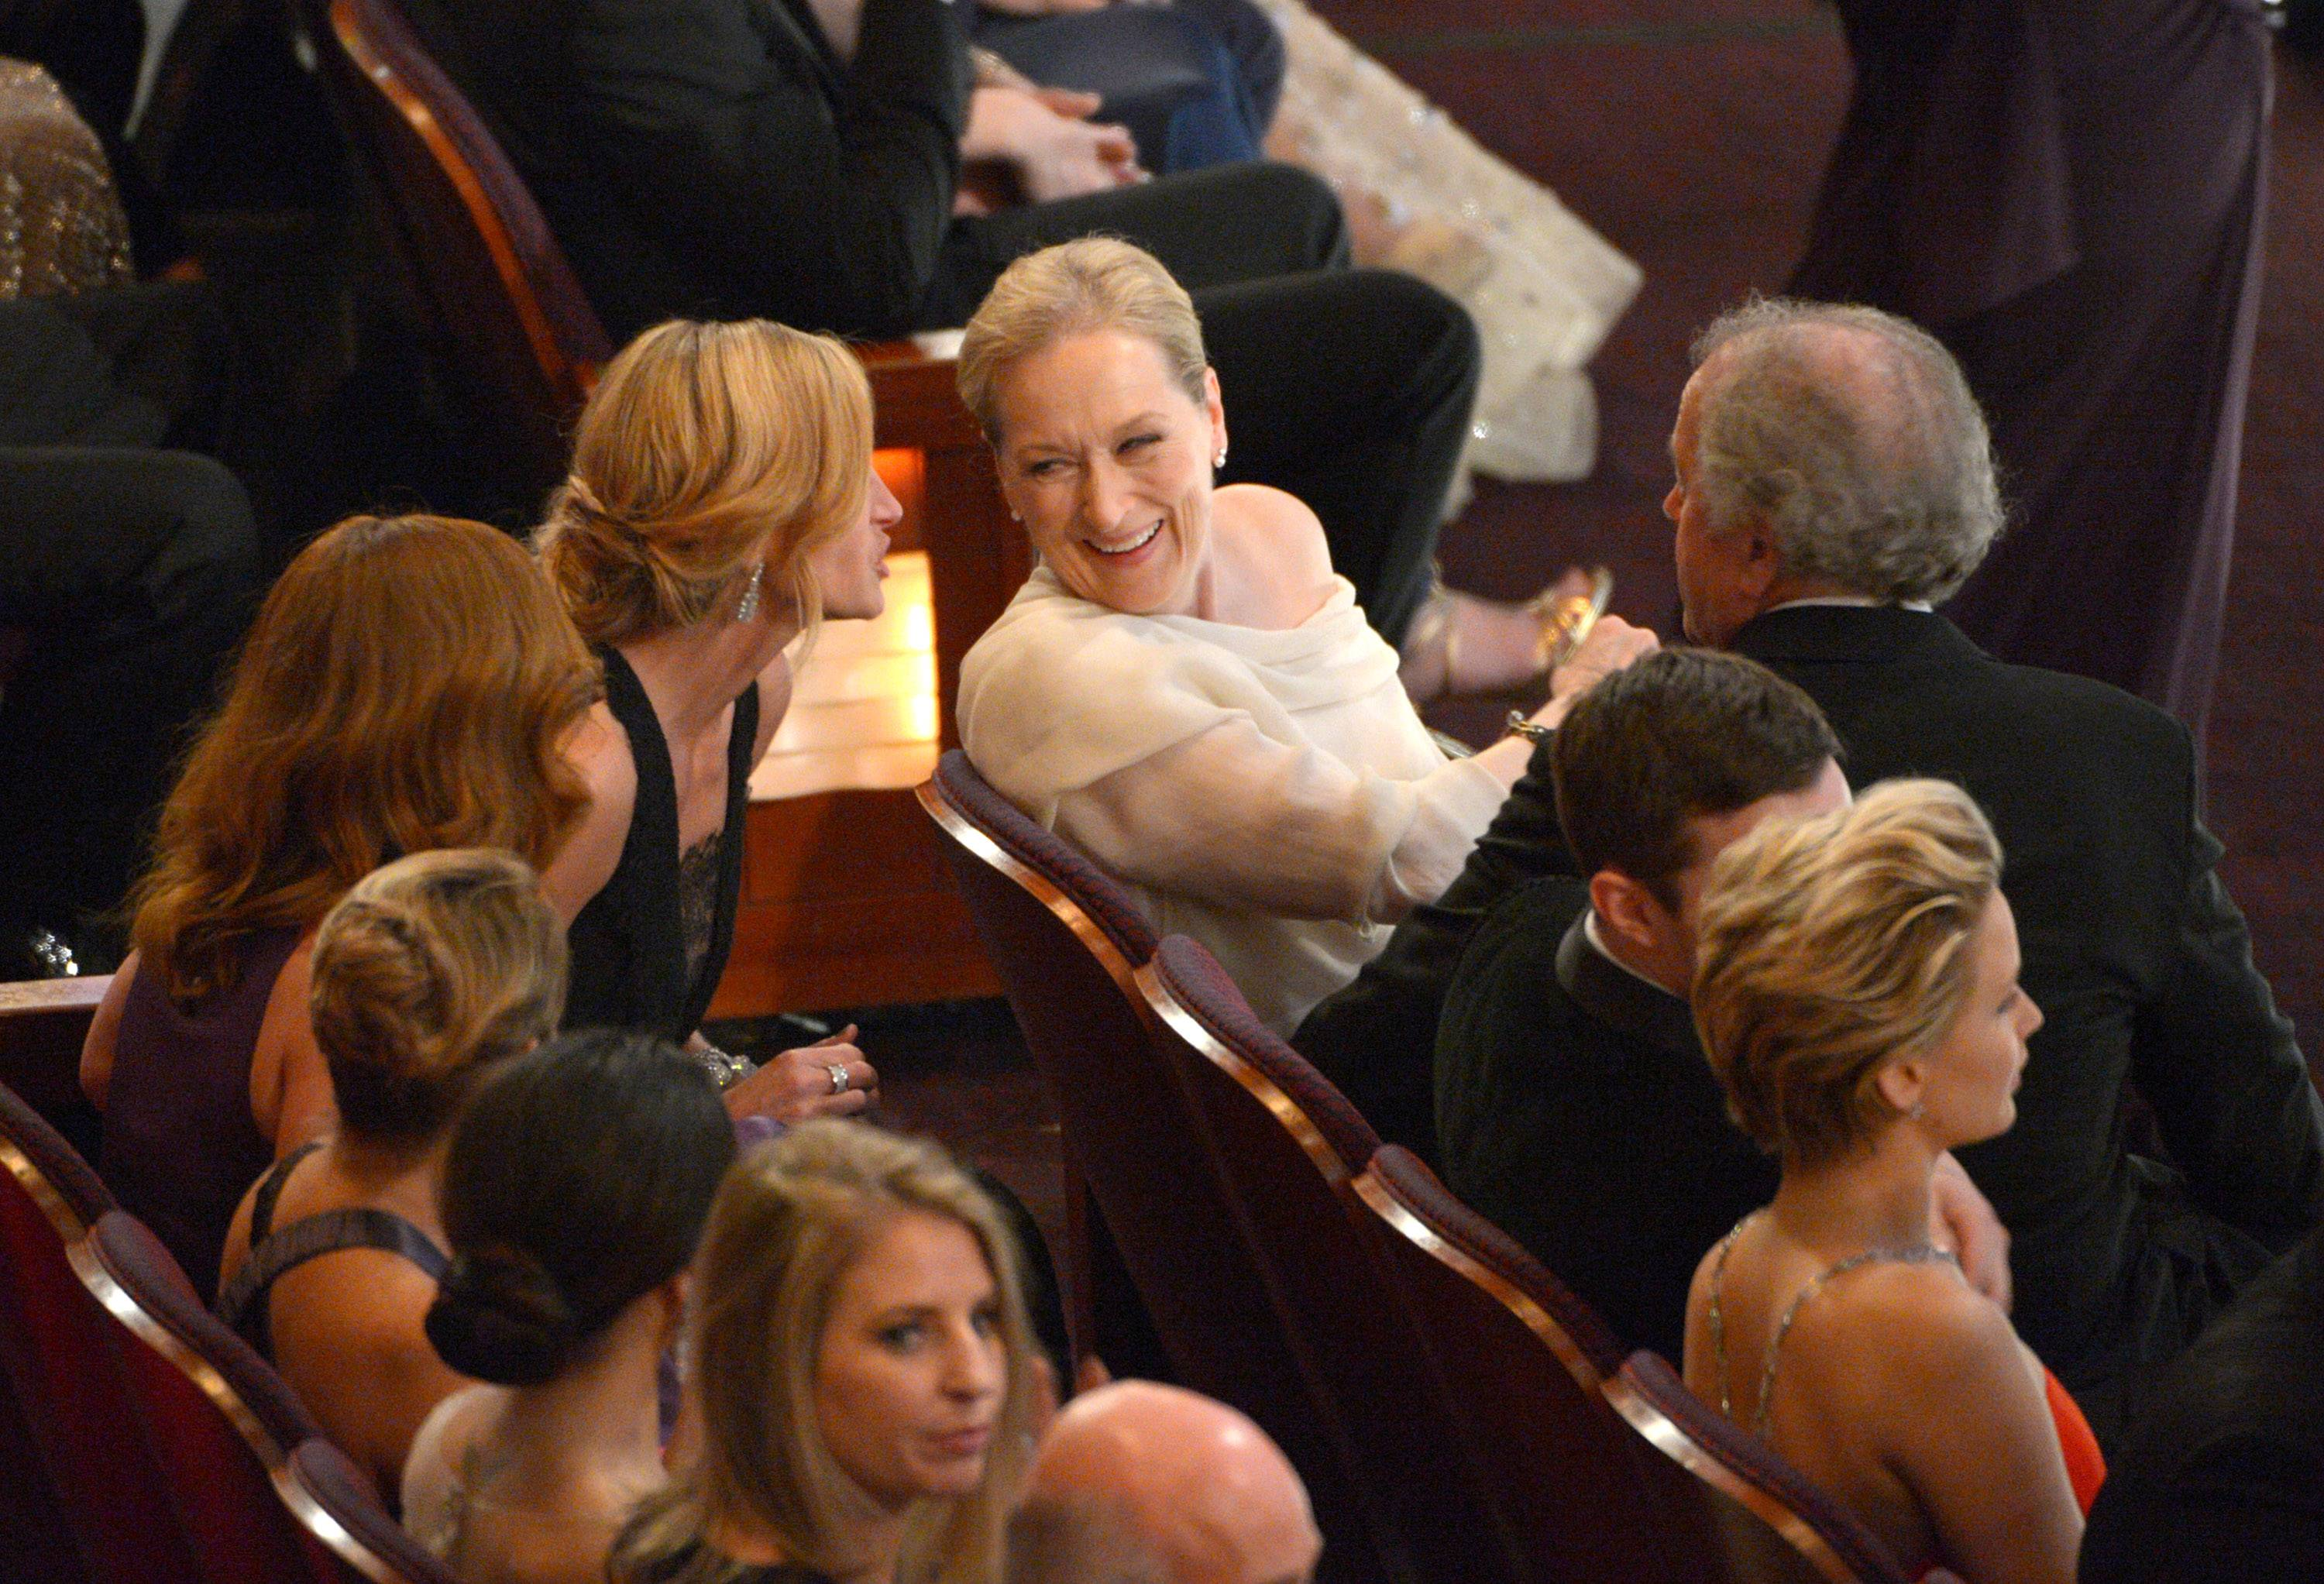 """August Osage County"" co-stars Julia Roberts, left, and Meryl Streep are seen in the audience at the Oscars at the Dolby Theatre on Sunday in Los Angeles."